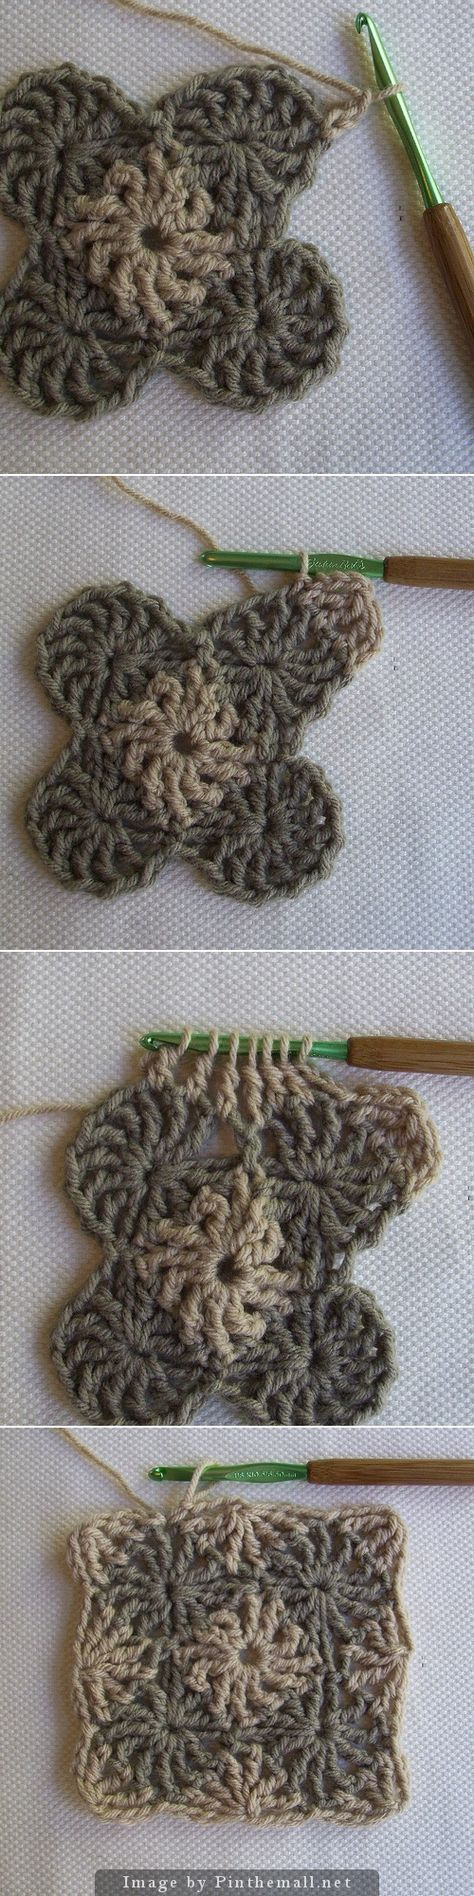 crochet - cool wheels granny square from crochet dad